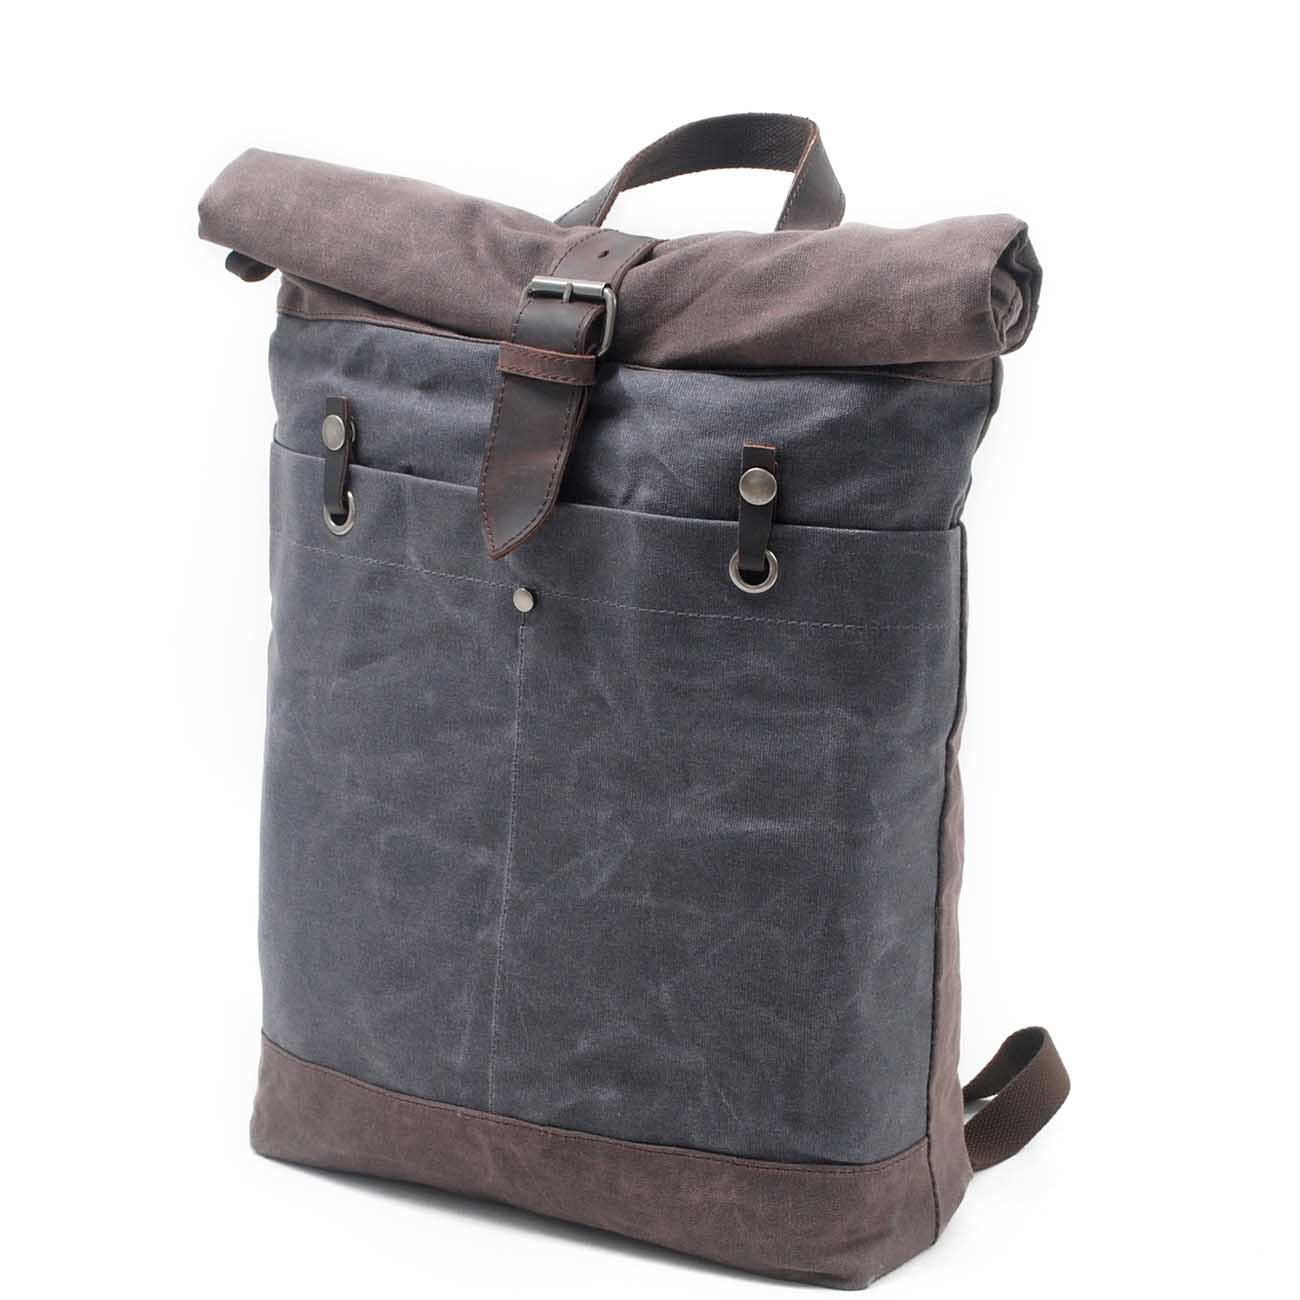 Virginland New Style Canvas Backpack Retro Backpack Waterproof Outdoor Travel Bag College Wave Bag